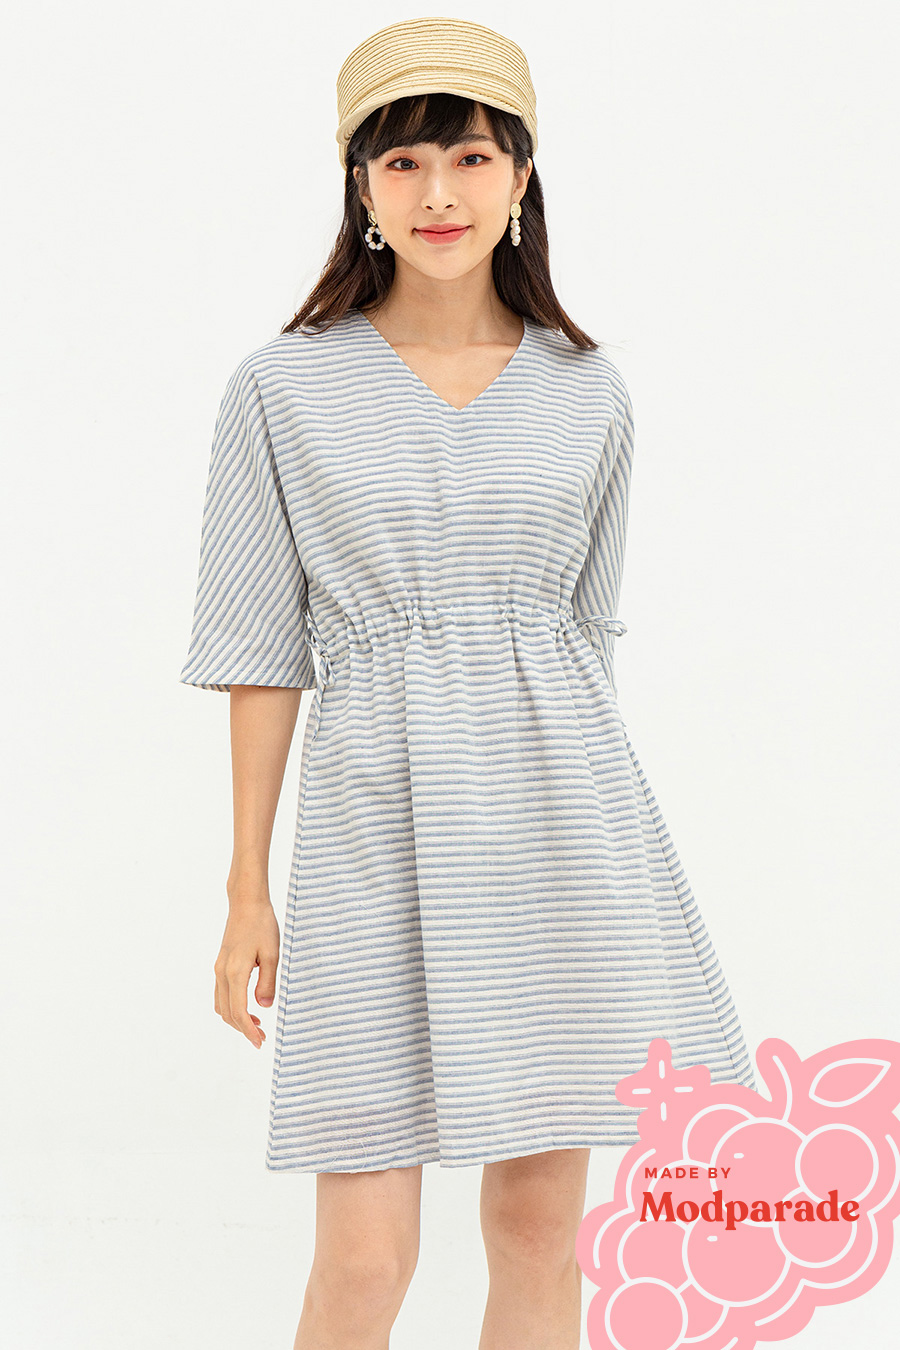 IZZEY DRESS - COPEN STRIPE [BY MODPARADE]